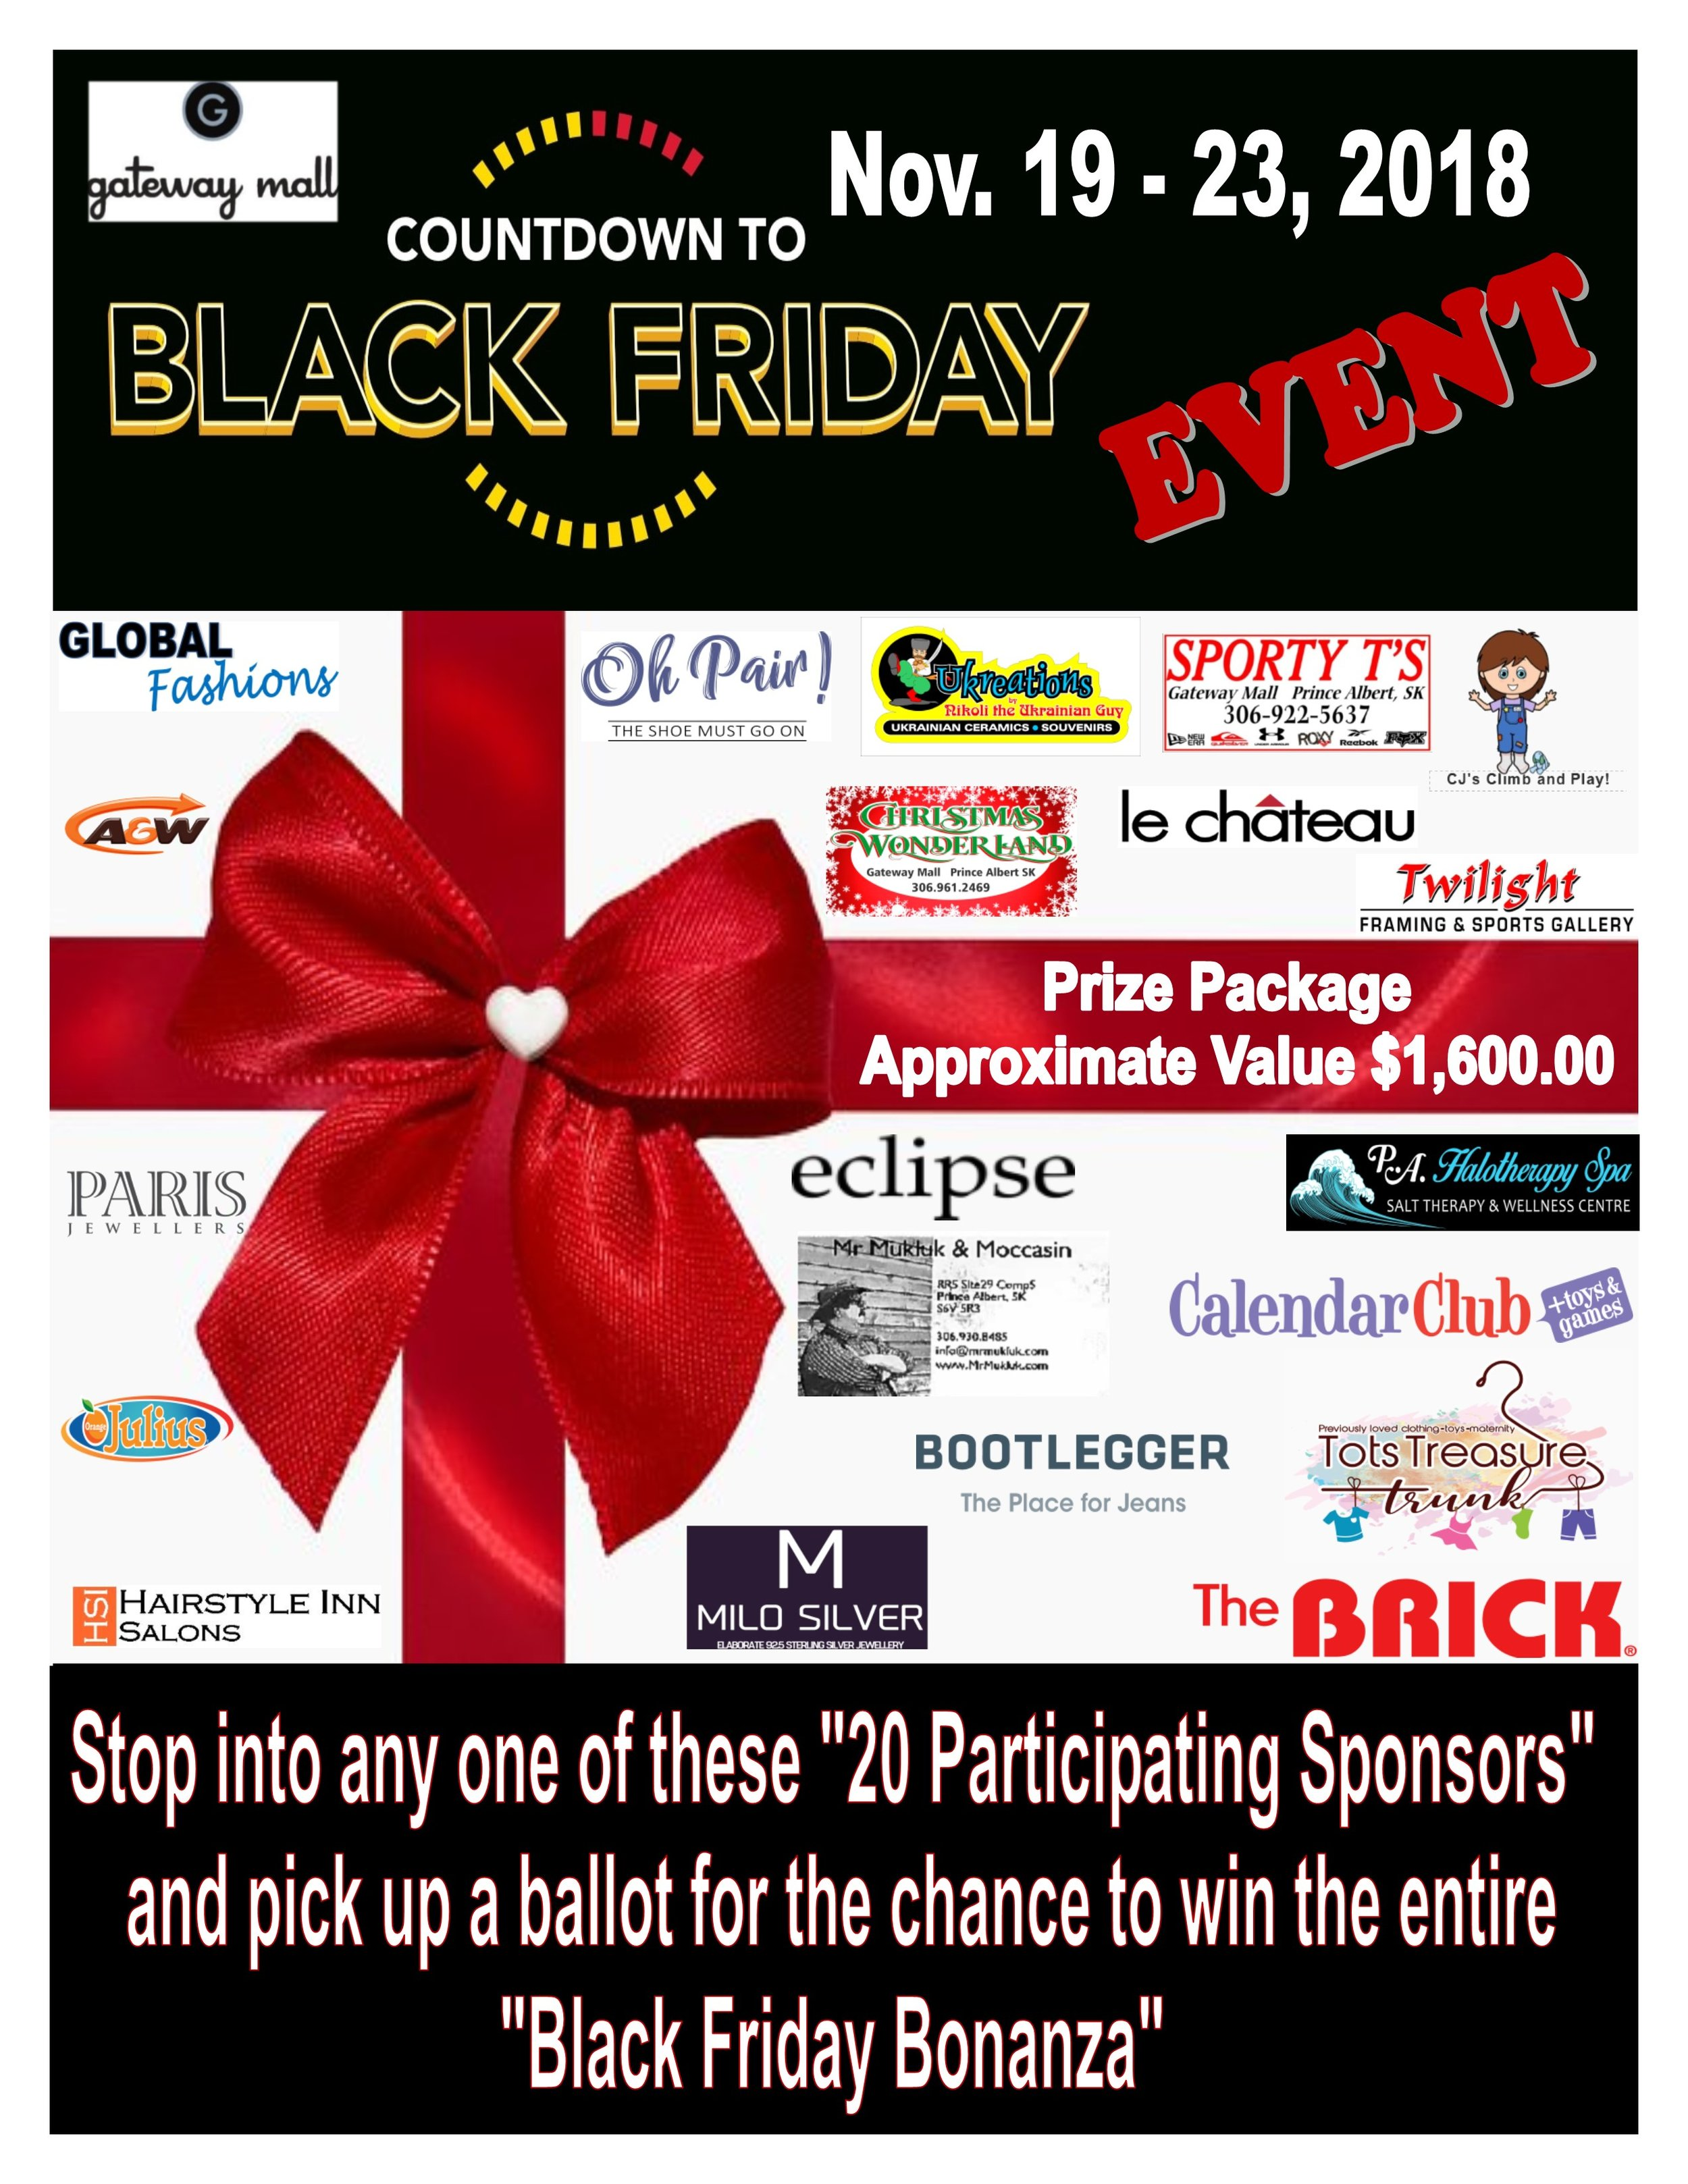 No purchase necessary to enter contest.  Must be of legal age to enter contest.  Employees and their immediate families of sponsor stores are not eligible to enter contest.  1 ballot per day / per store / per person.  Prize package WILL NOT be mailed out. Winner must claim prize in person.  No cash value to any of the prizes.  No exchanges or refunds for any of the prizes.  Identification will be required to claim prize package.  Draw will take place on November 24th, when Santa comes into the mall after the parade.  After the winner has been contacted and verified - their name will be released on our Facebook page and here on our website.